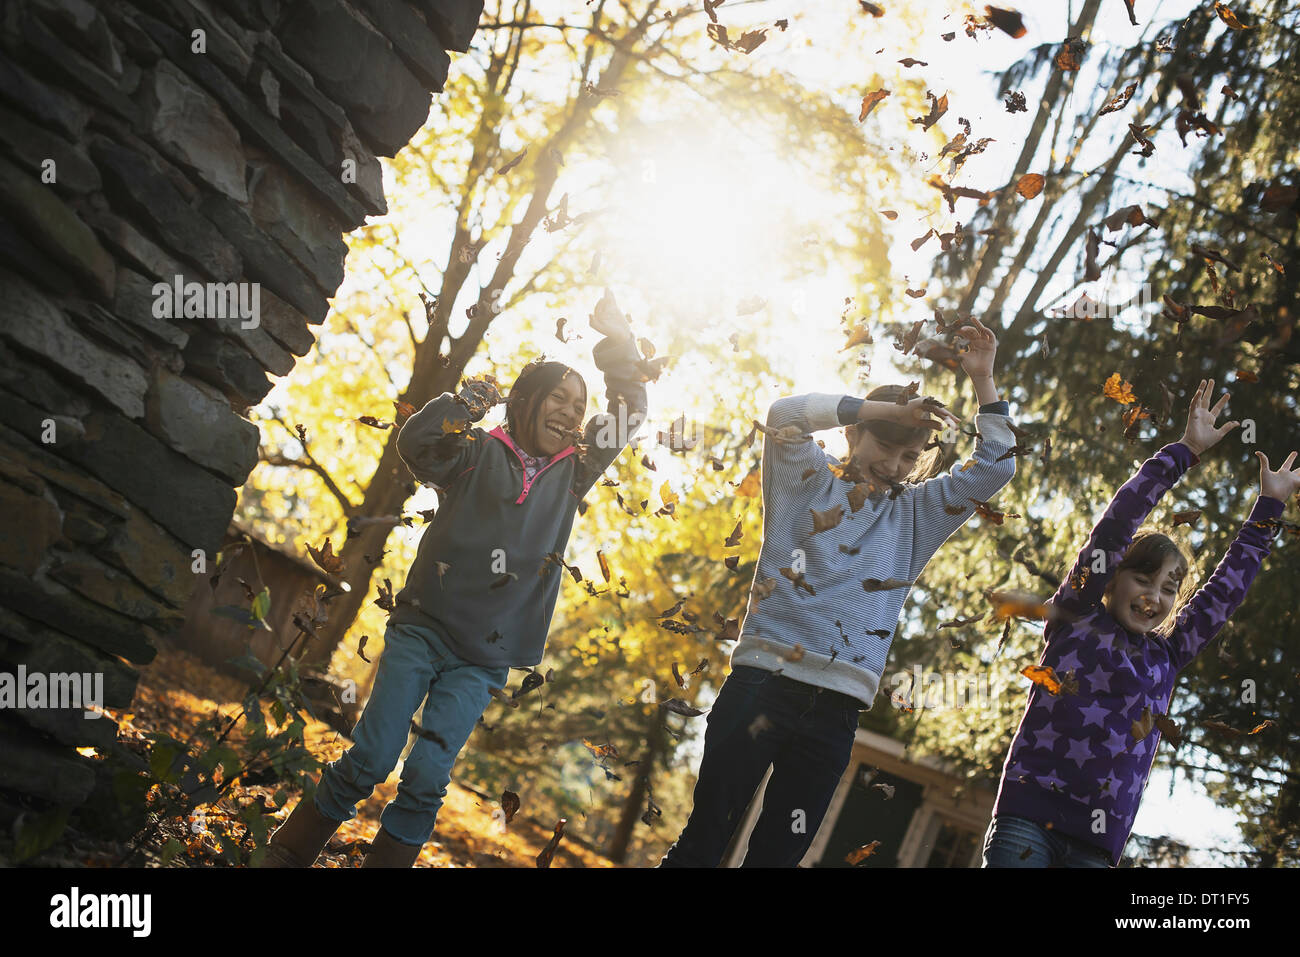 Three children in the autumn sunshine Playing outdoors throwing the fallen leaves in the air - Stock Image